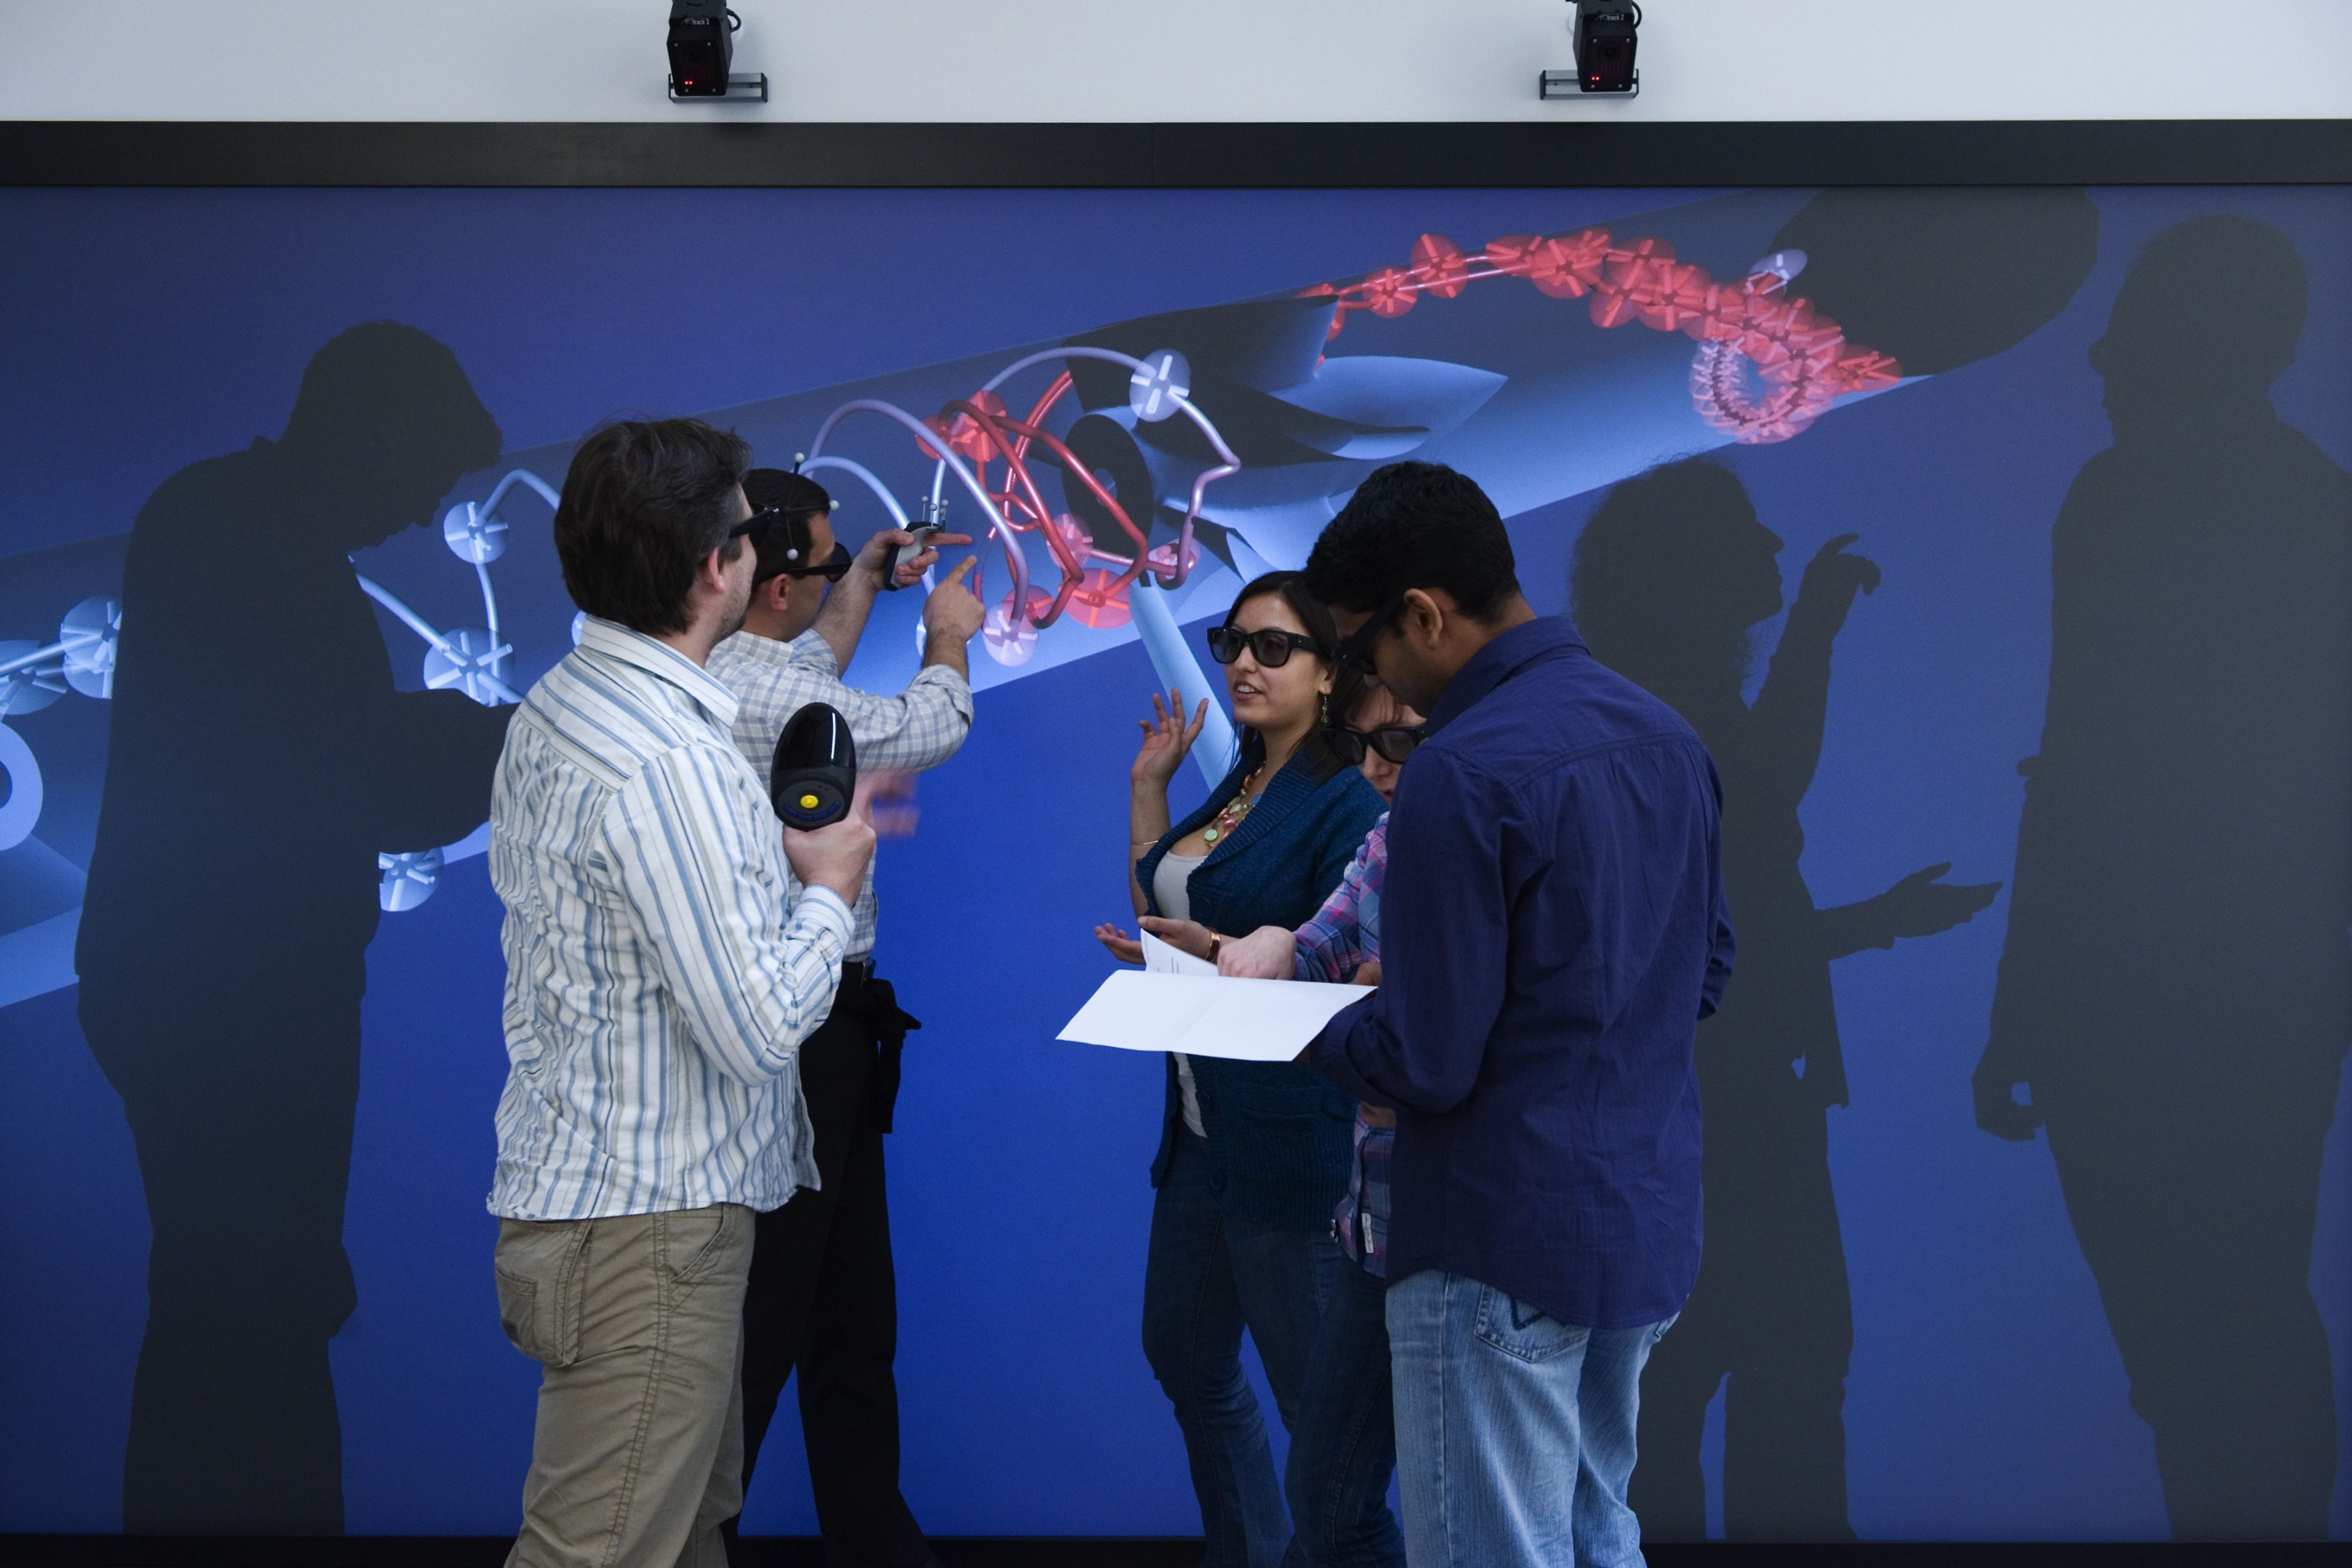 Cover picture of the profile area brochure with scientists in front of a projection screen